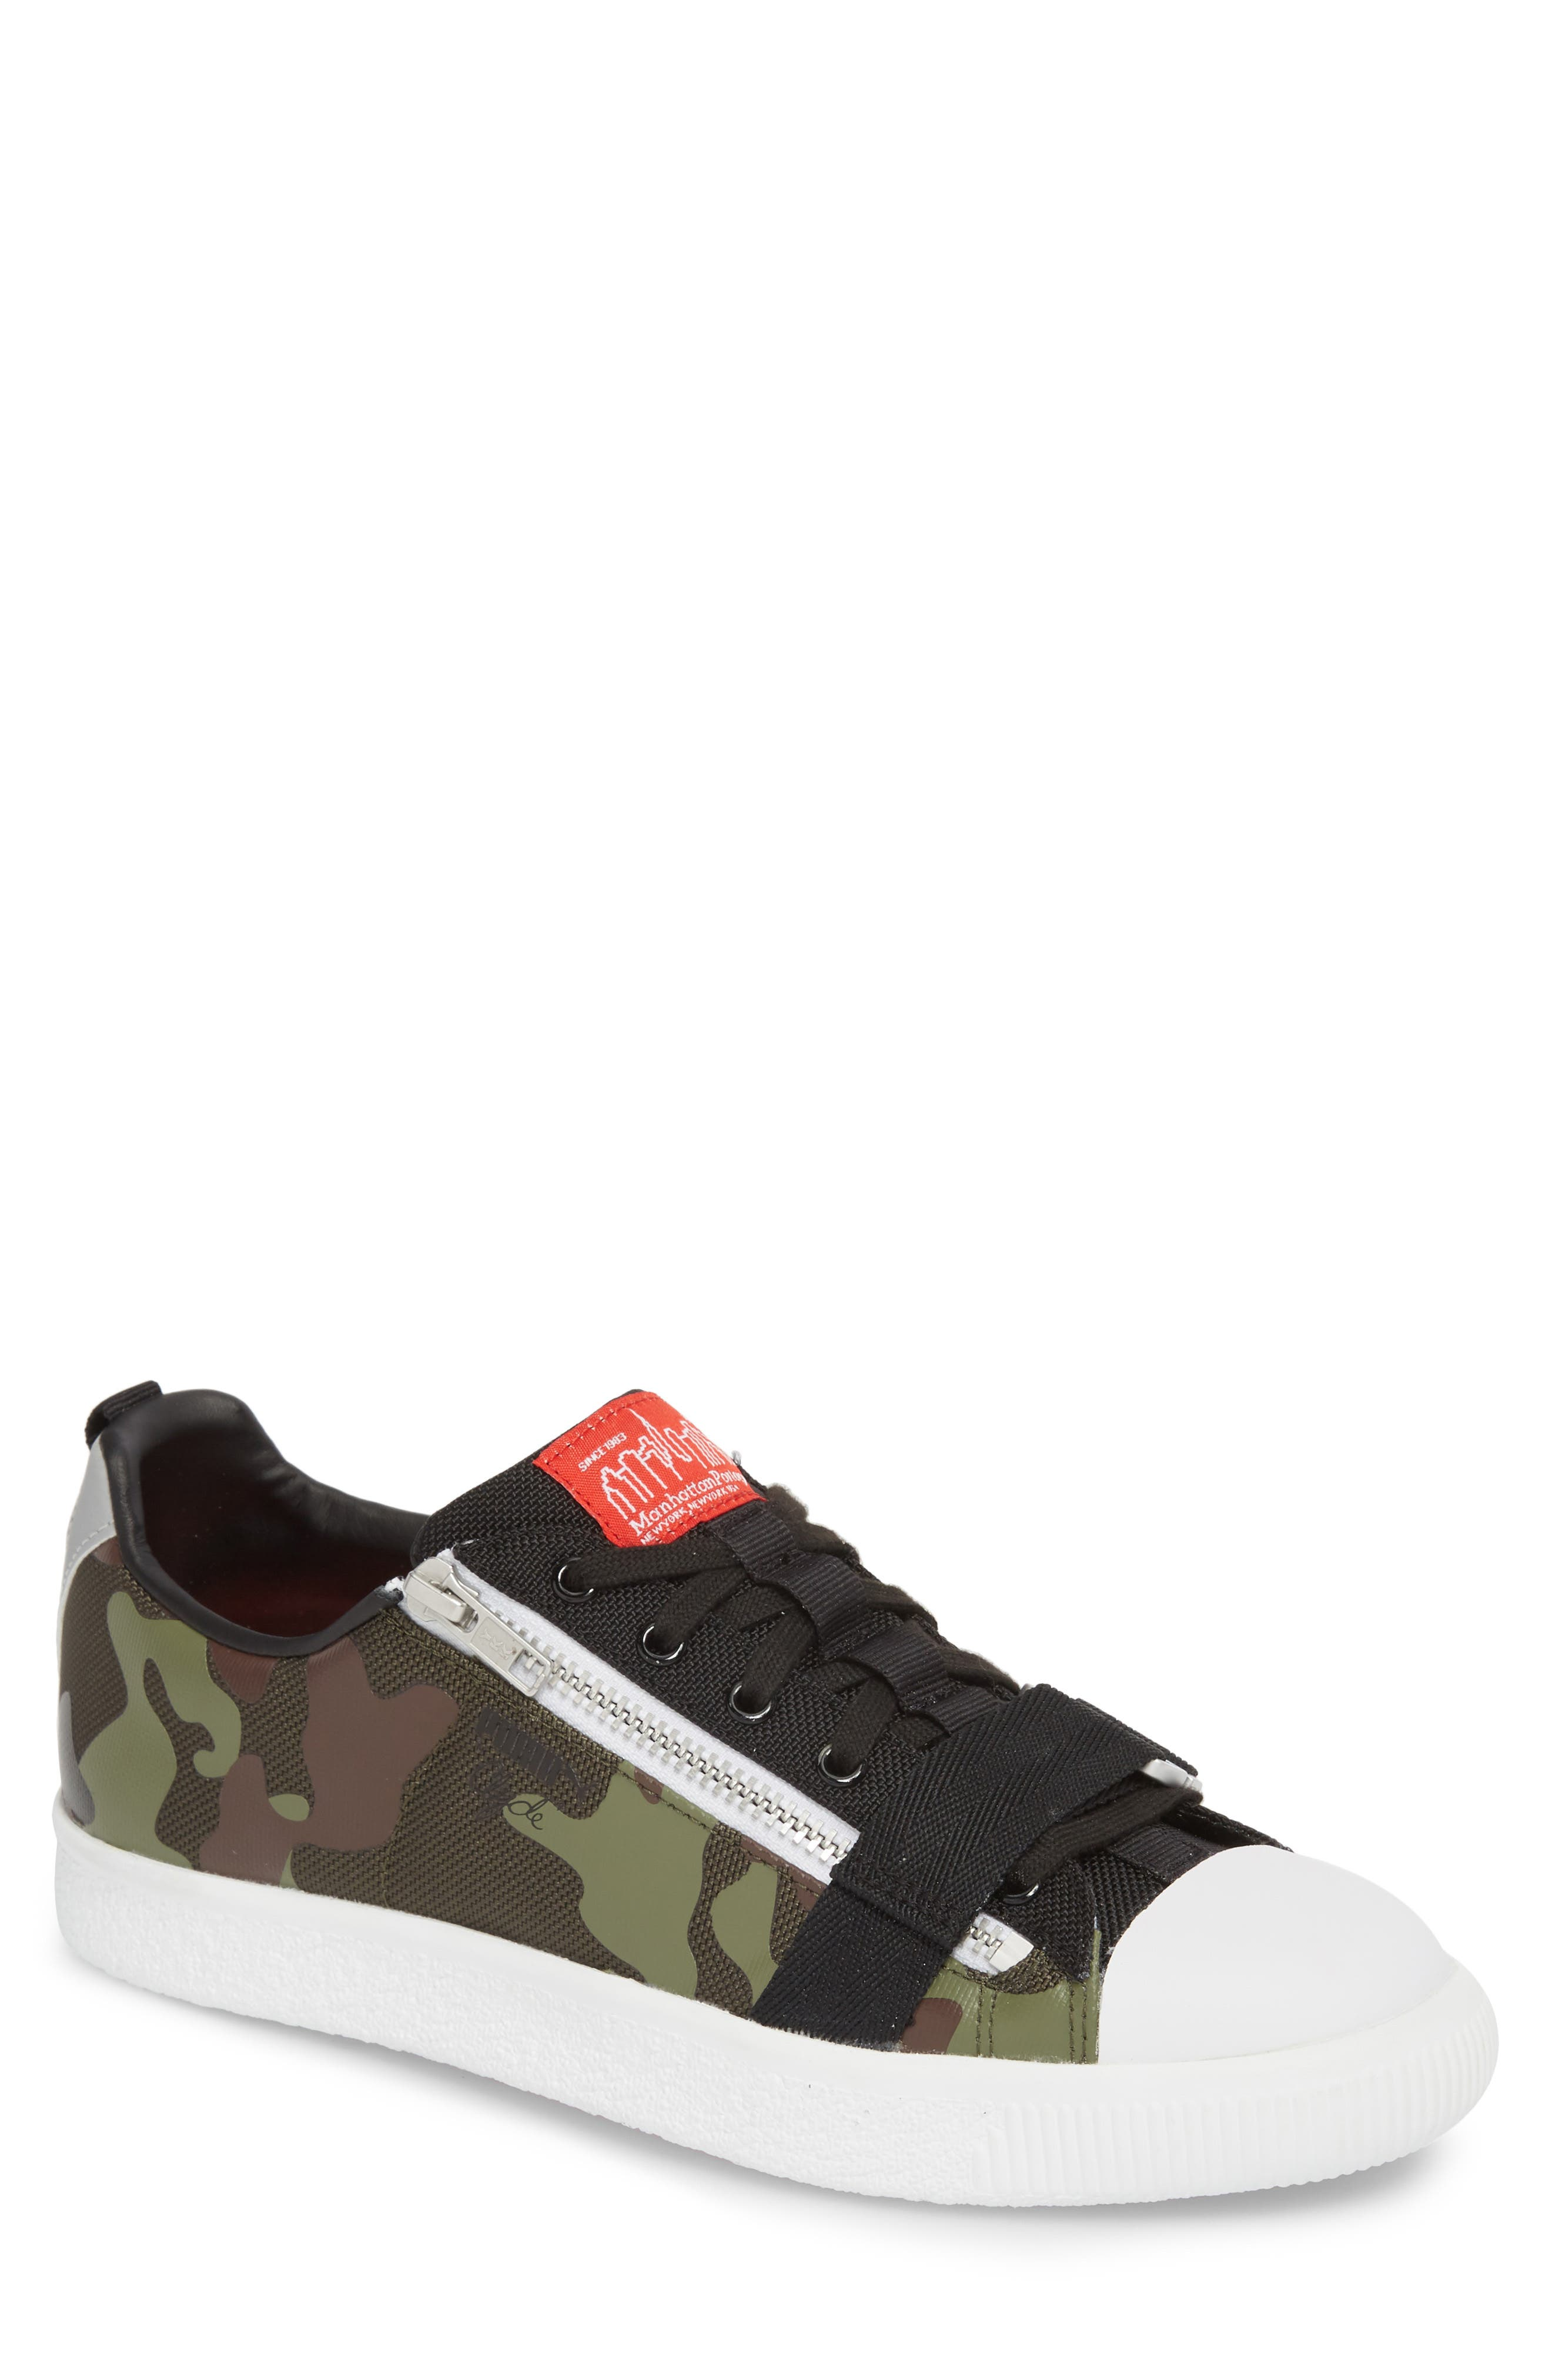 PUMA x MANHATTAN PORTAGE Clyde Zip Sneaker (Men)